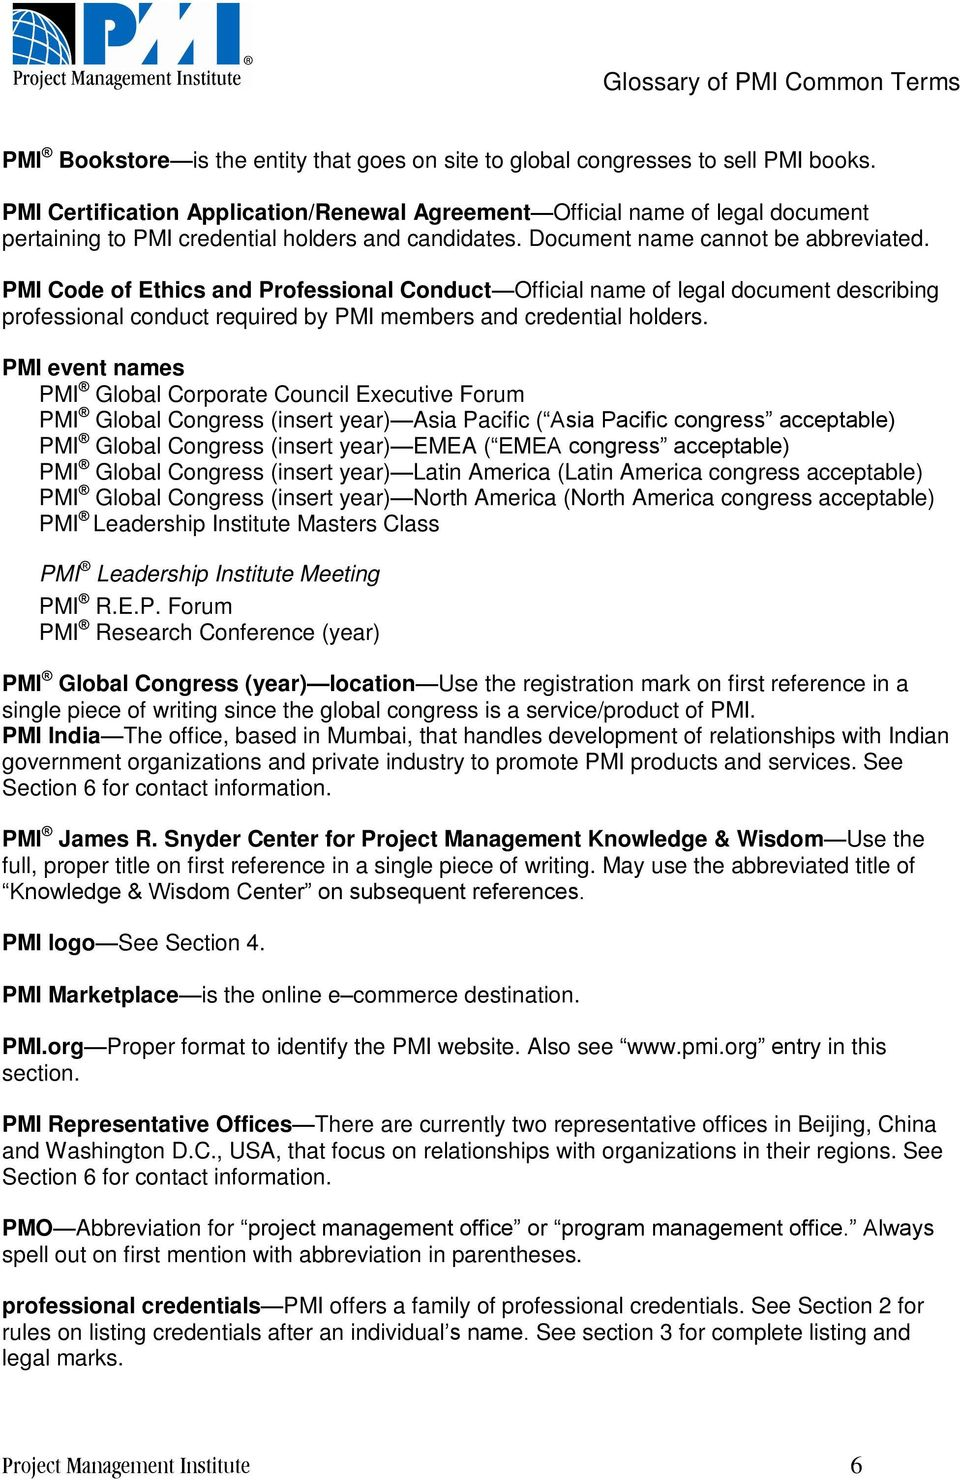 PMI Code of Ethics and Professional Conduct Official name of legal document describing professional conduct required by PMI members and credential holders.